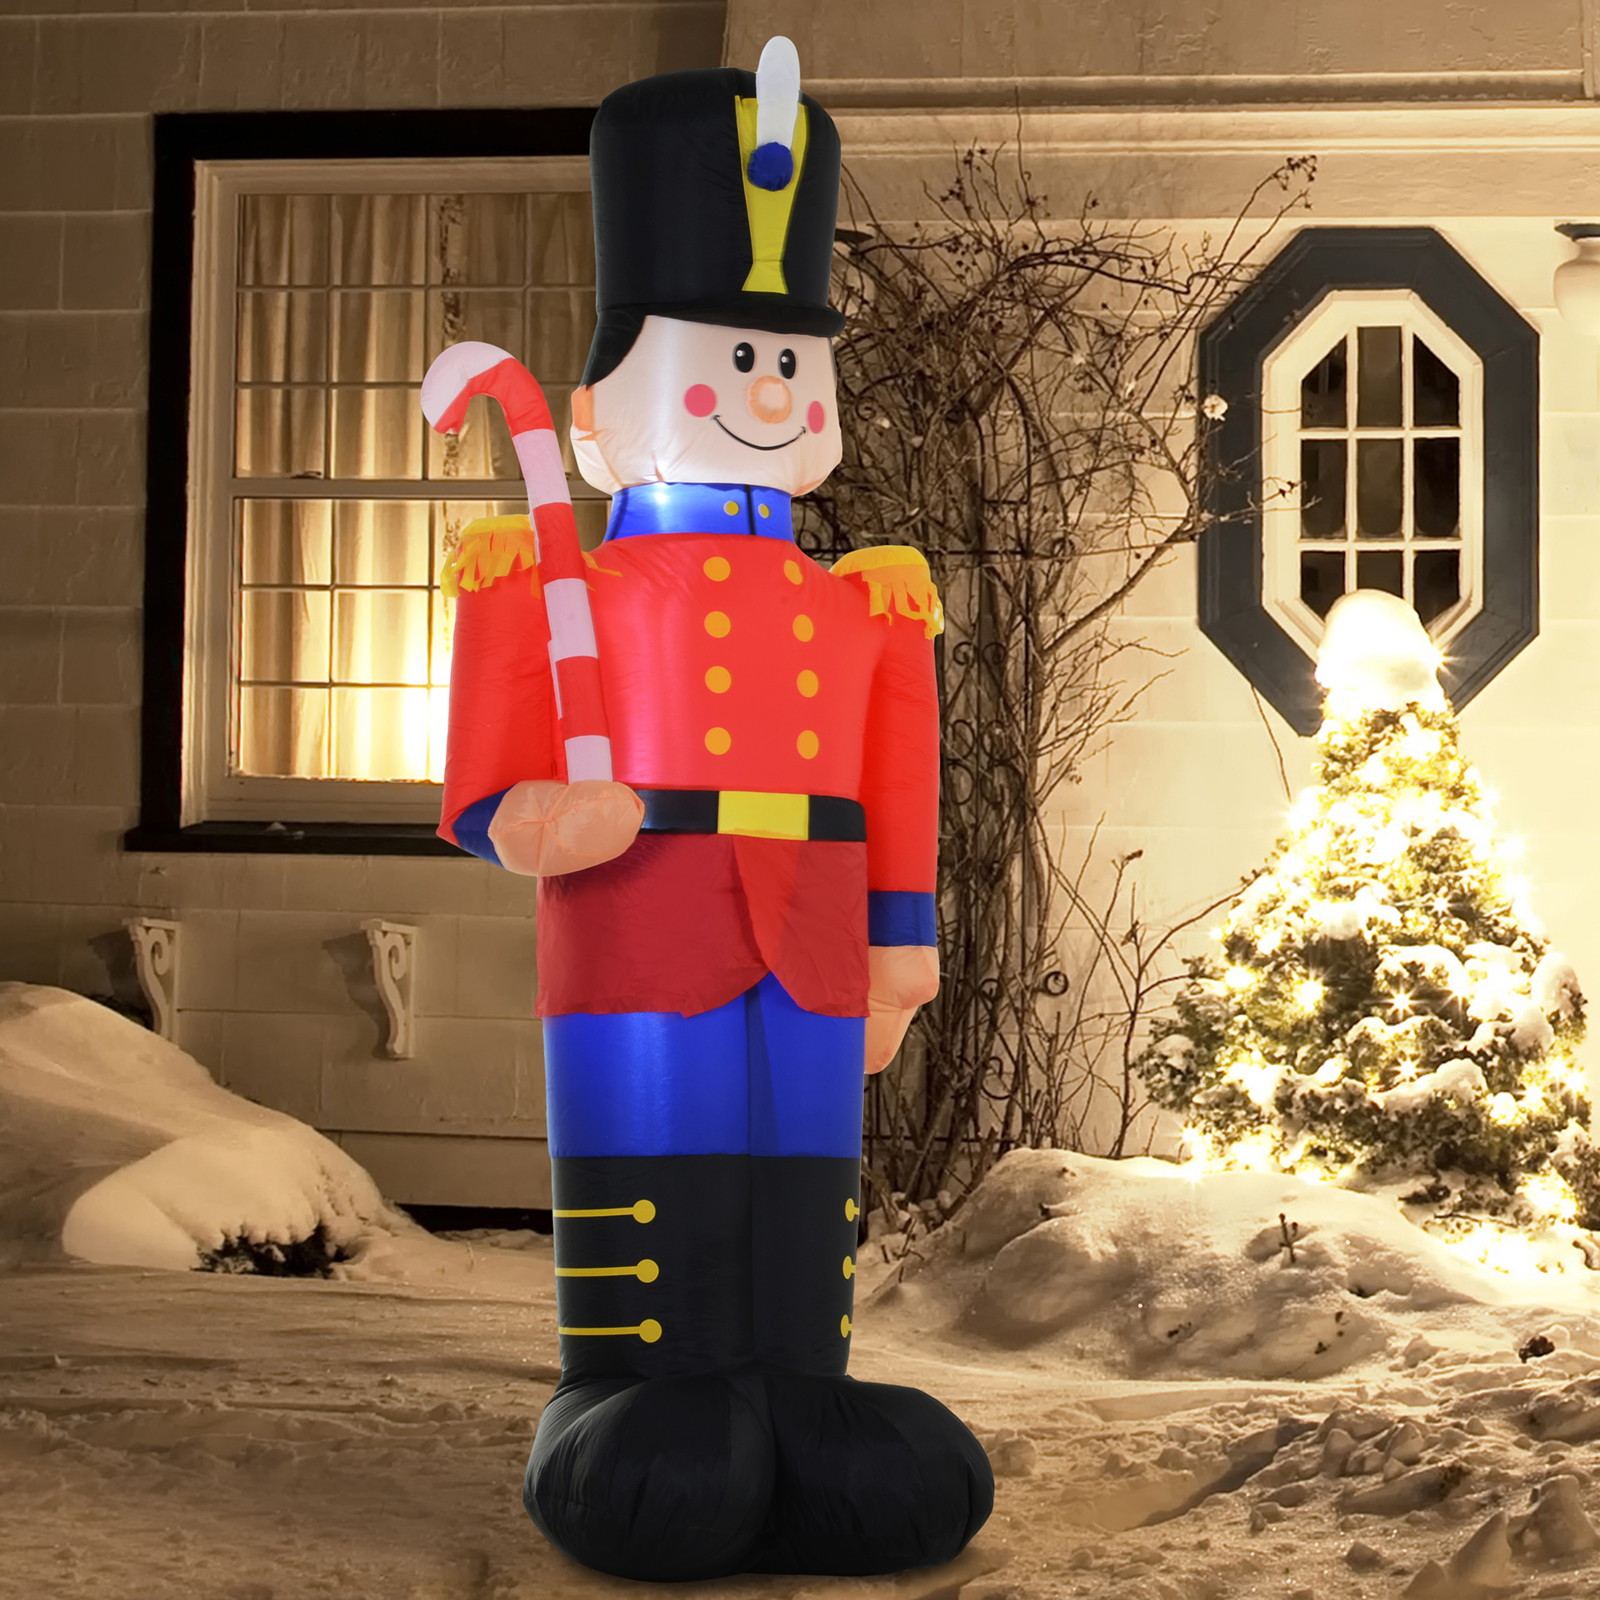 Outdoor Toy Soldier Christmas Decorations.Details About 6 Toy Soldier Nutcracker Christmas Lawn Inflatable Outdoor Decoration